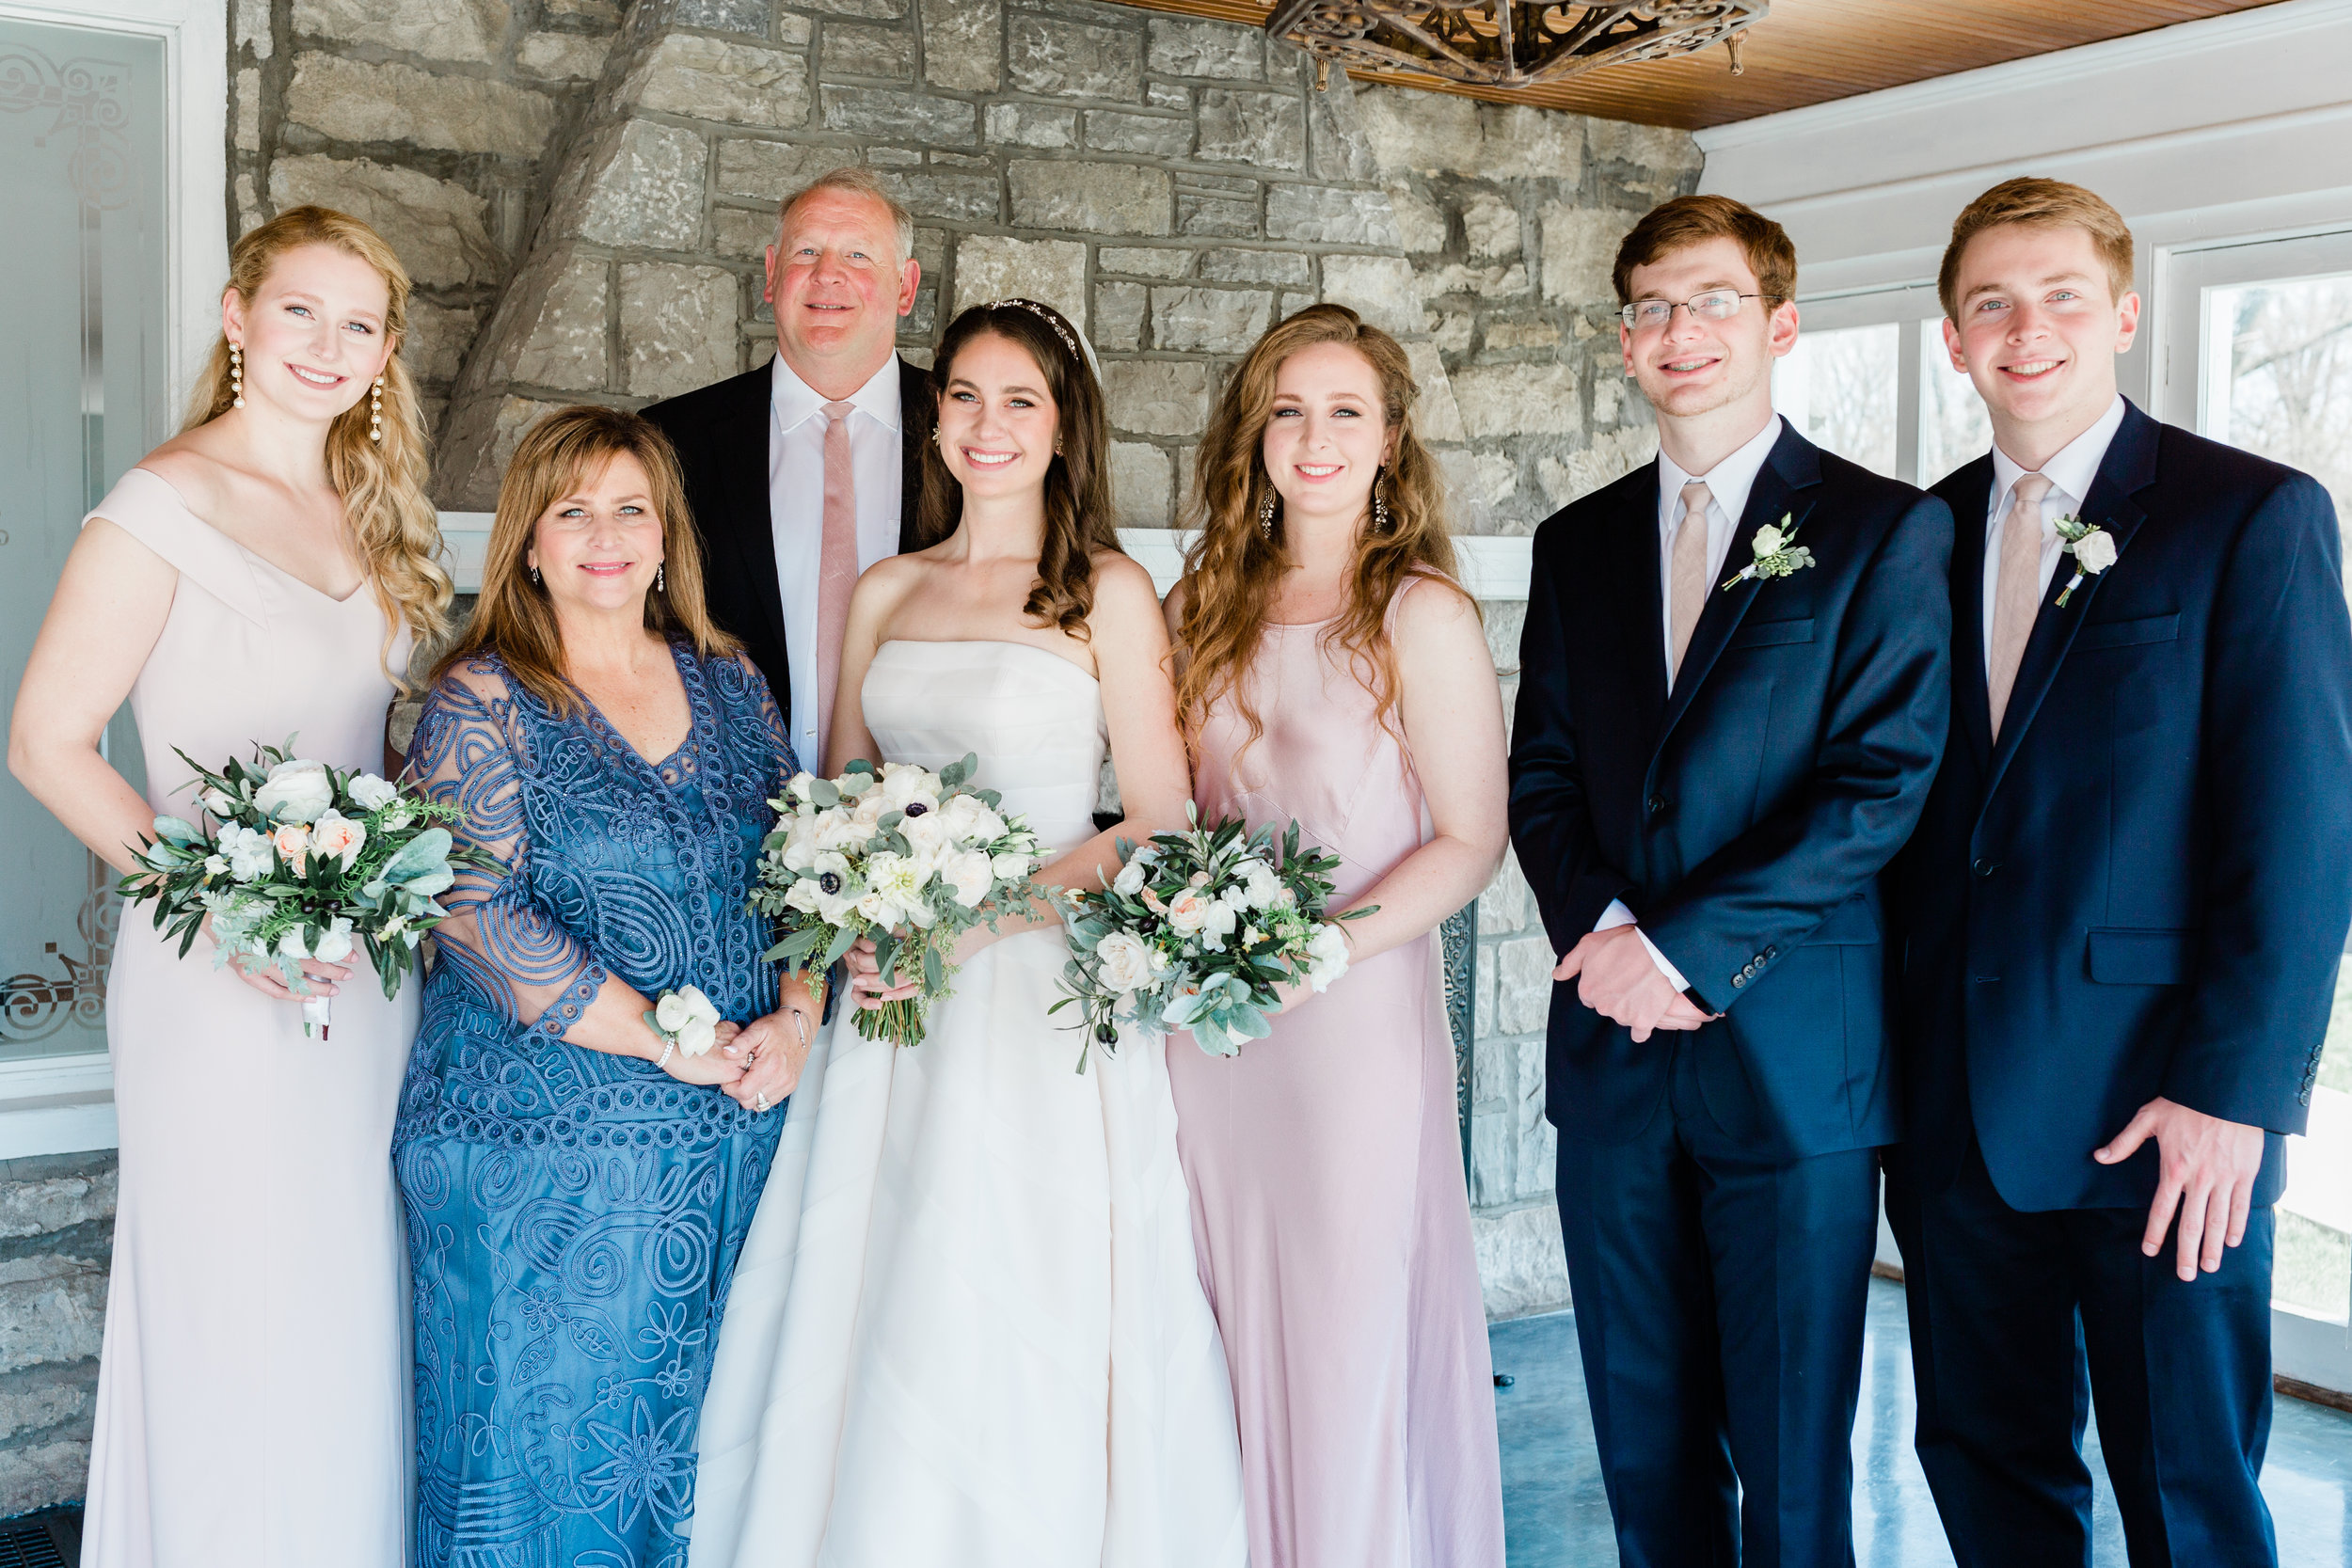 Dorothy_Louise_Photography_Amanda_Ryan_Stone_House_St_Charles_Wedding-9460.jpg